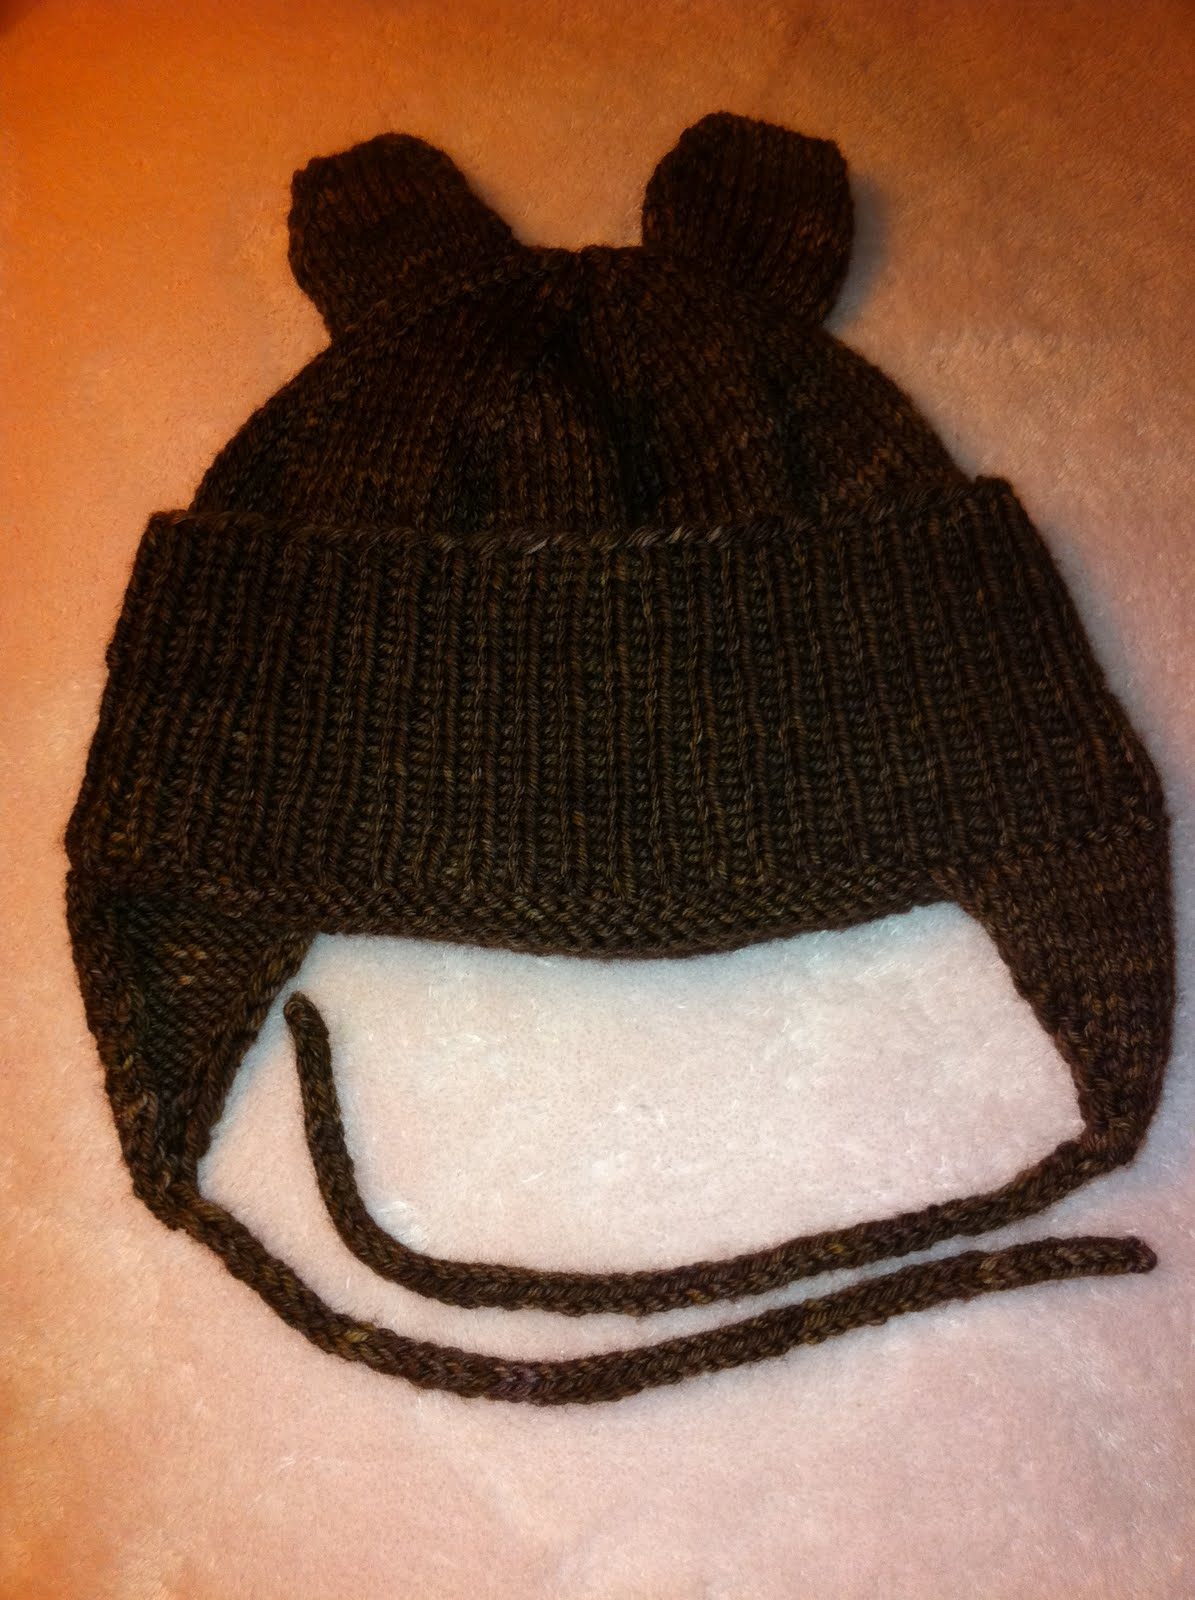 Knitting Pattern For Teddy Bear Hat : The Collected Cook.: Knitted Teddy Bear Hat Pattern